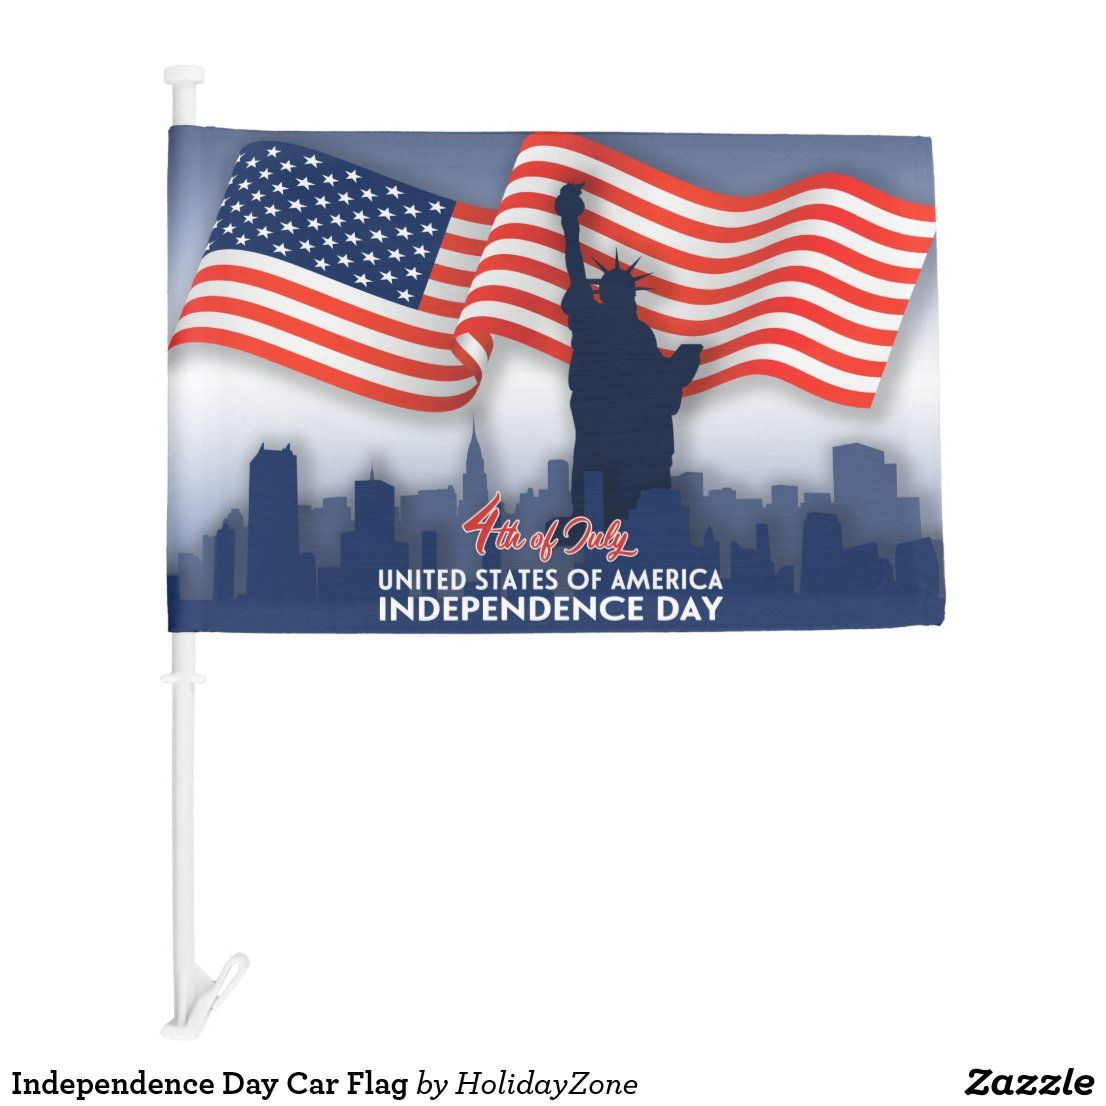 Independence Day Car Flag Zazzle Com In 2020 Independence Day Flag America Independence Day [ 1106 x 1106 Pixel ]